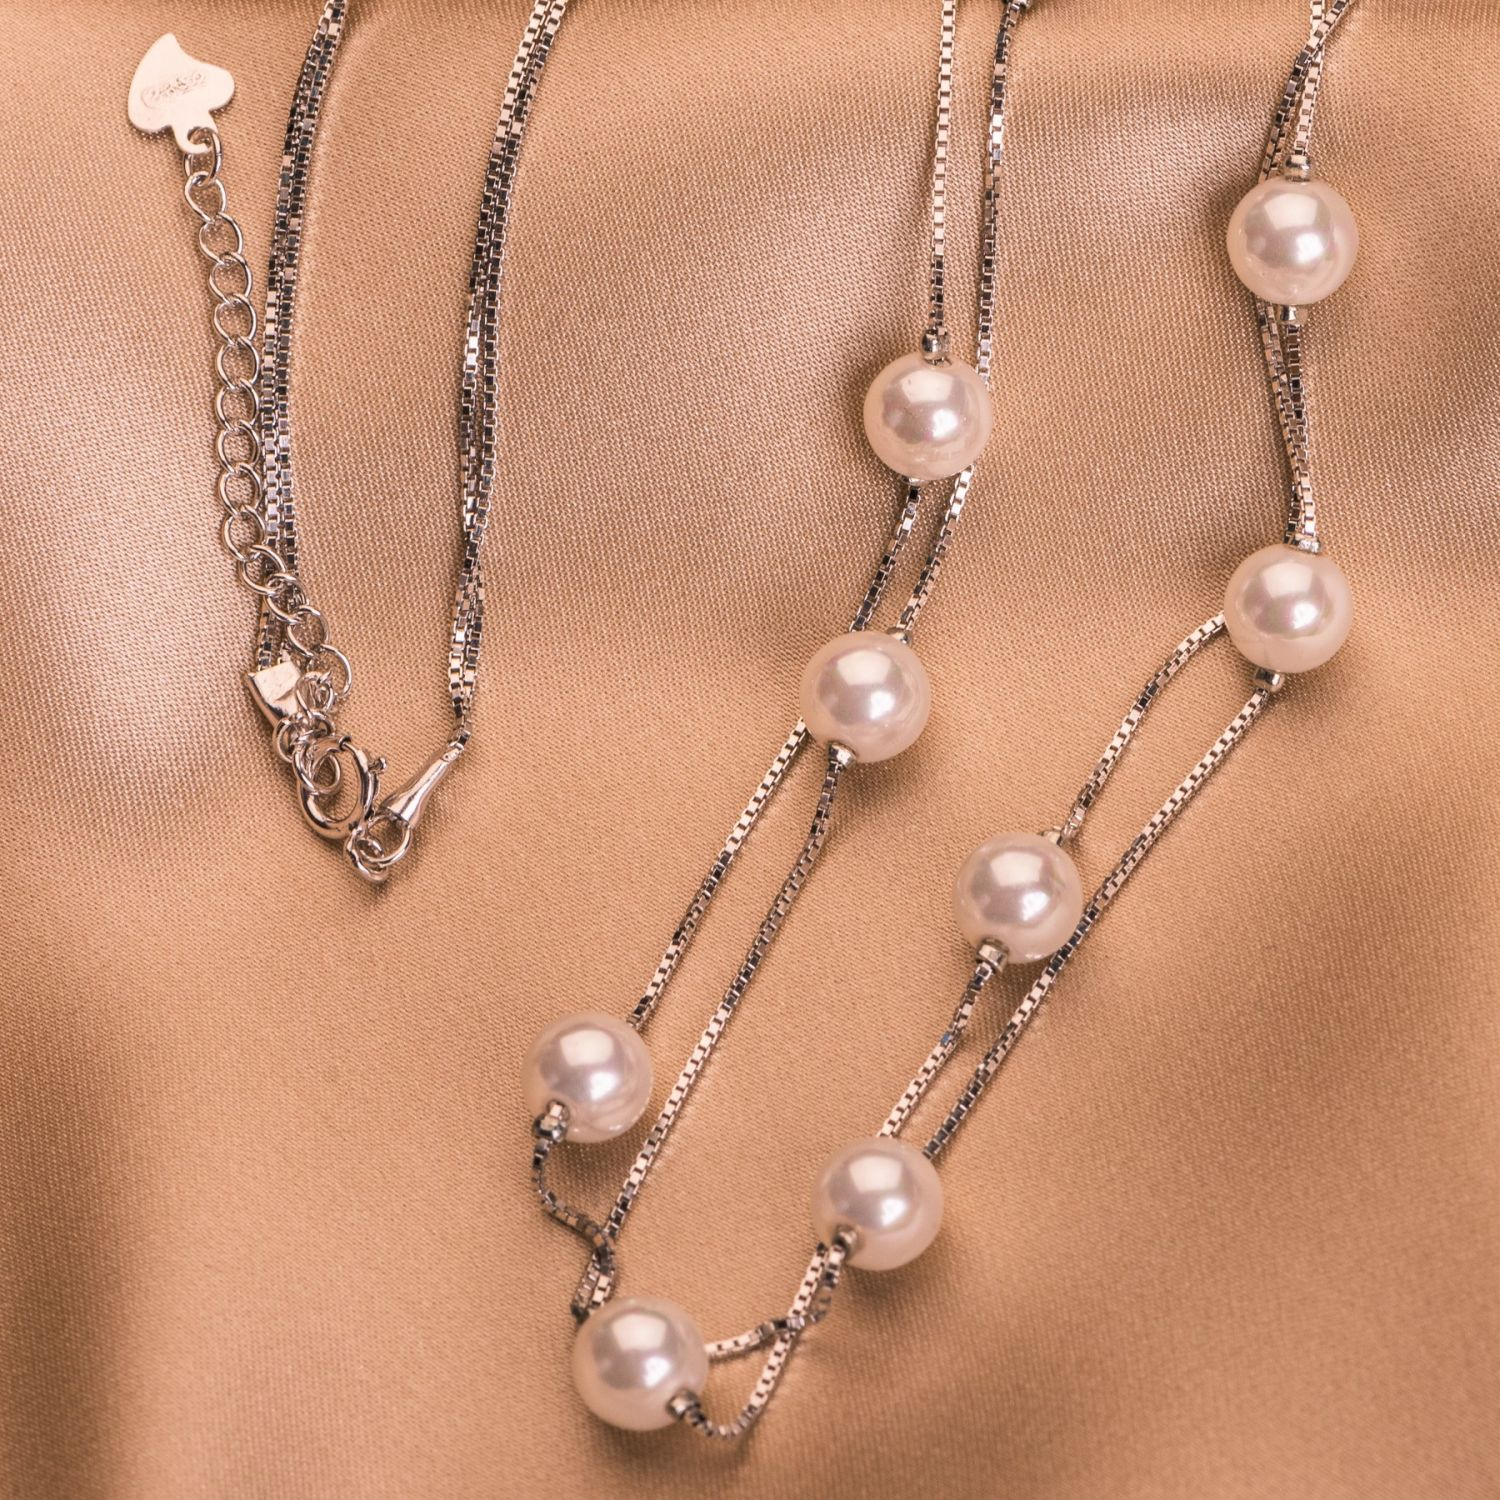 Sterling Silver Necklace Delicate 10 Pearls